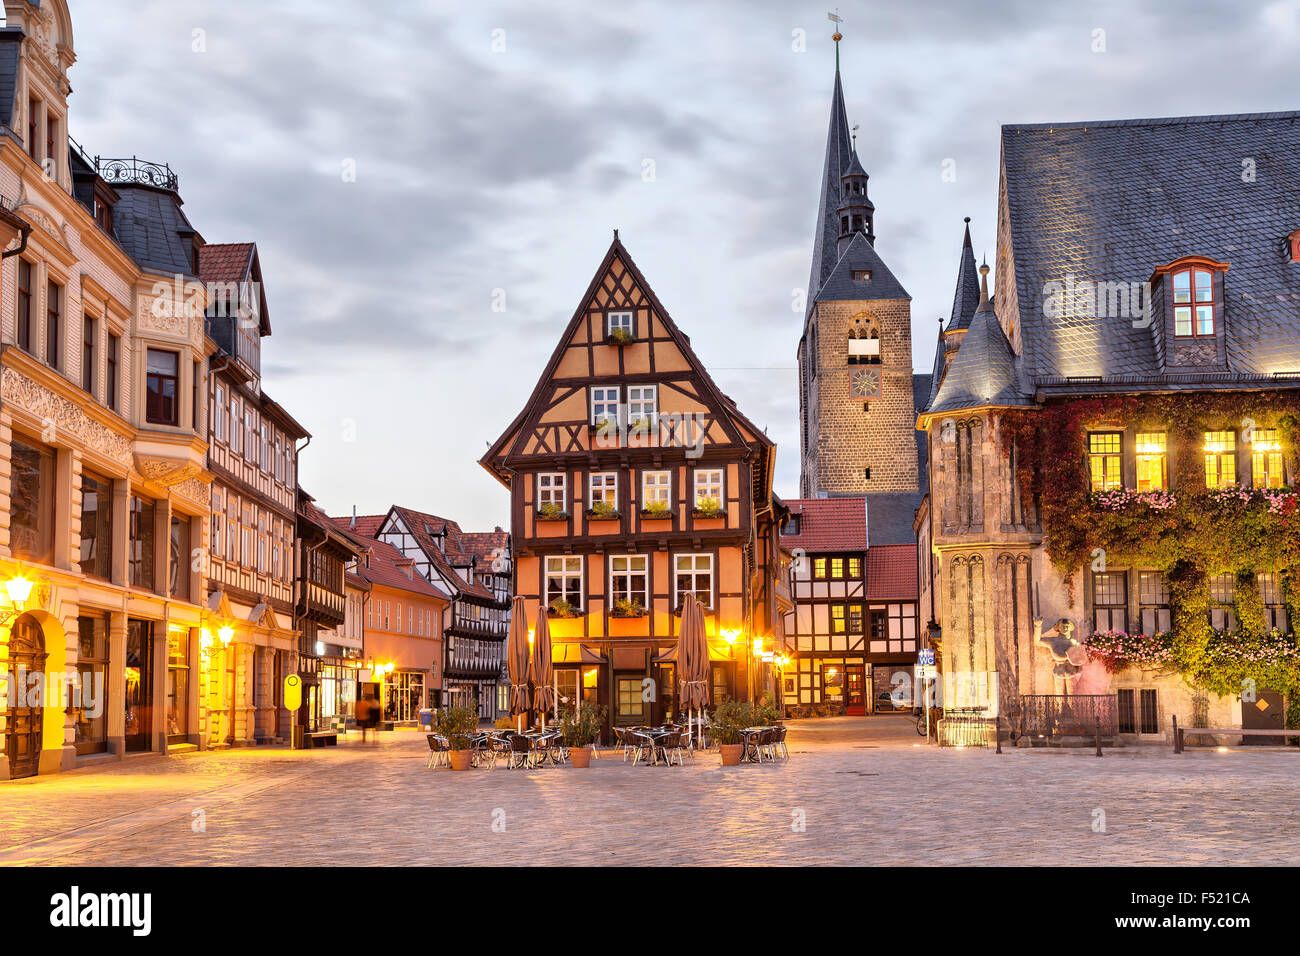 Half-timbered house on Market Square of Quedlinburg in the evening, Saxony-Anhalt, Germany - Stock Image